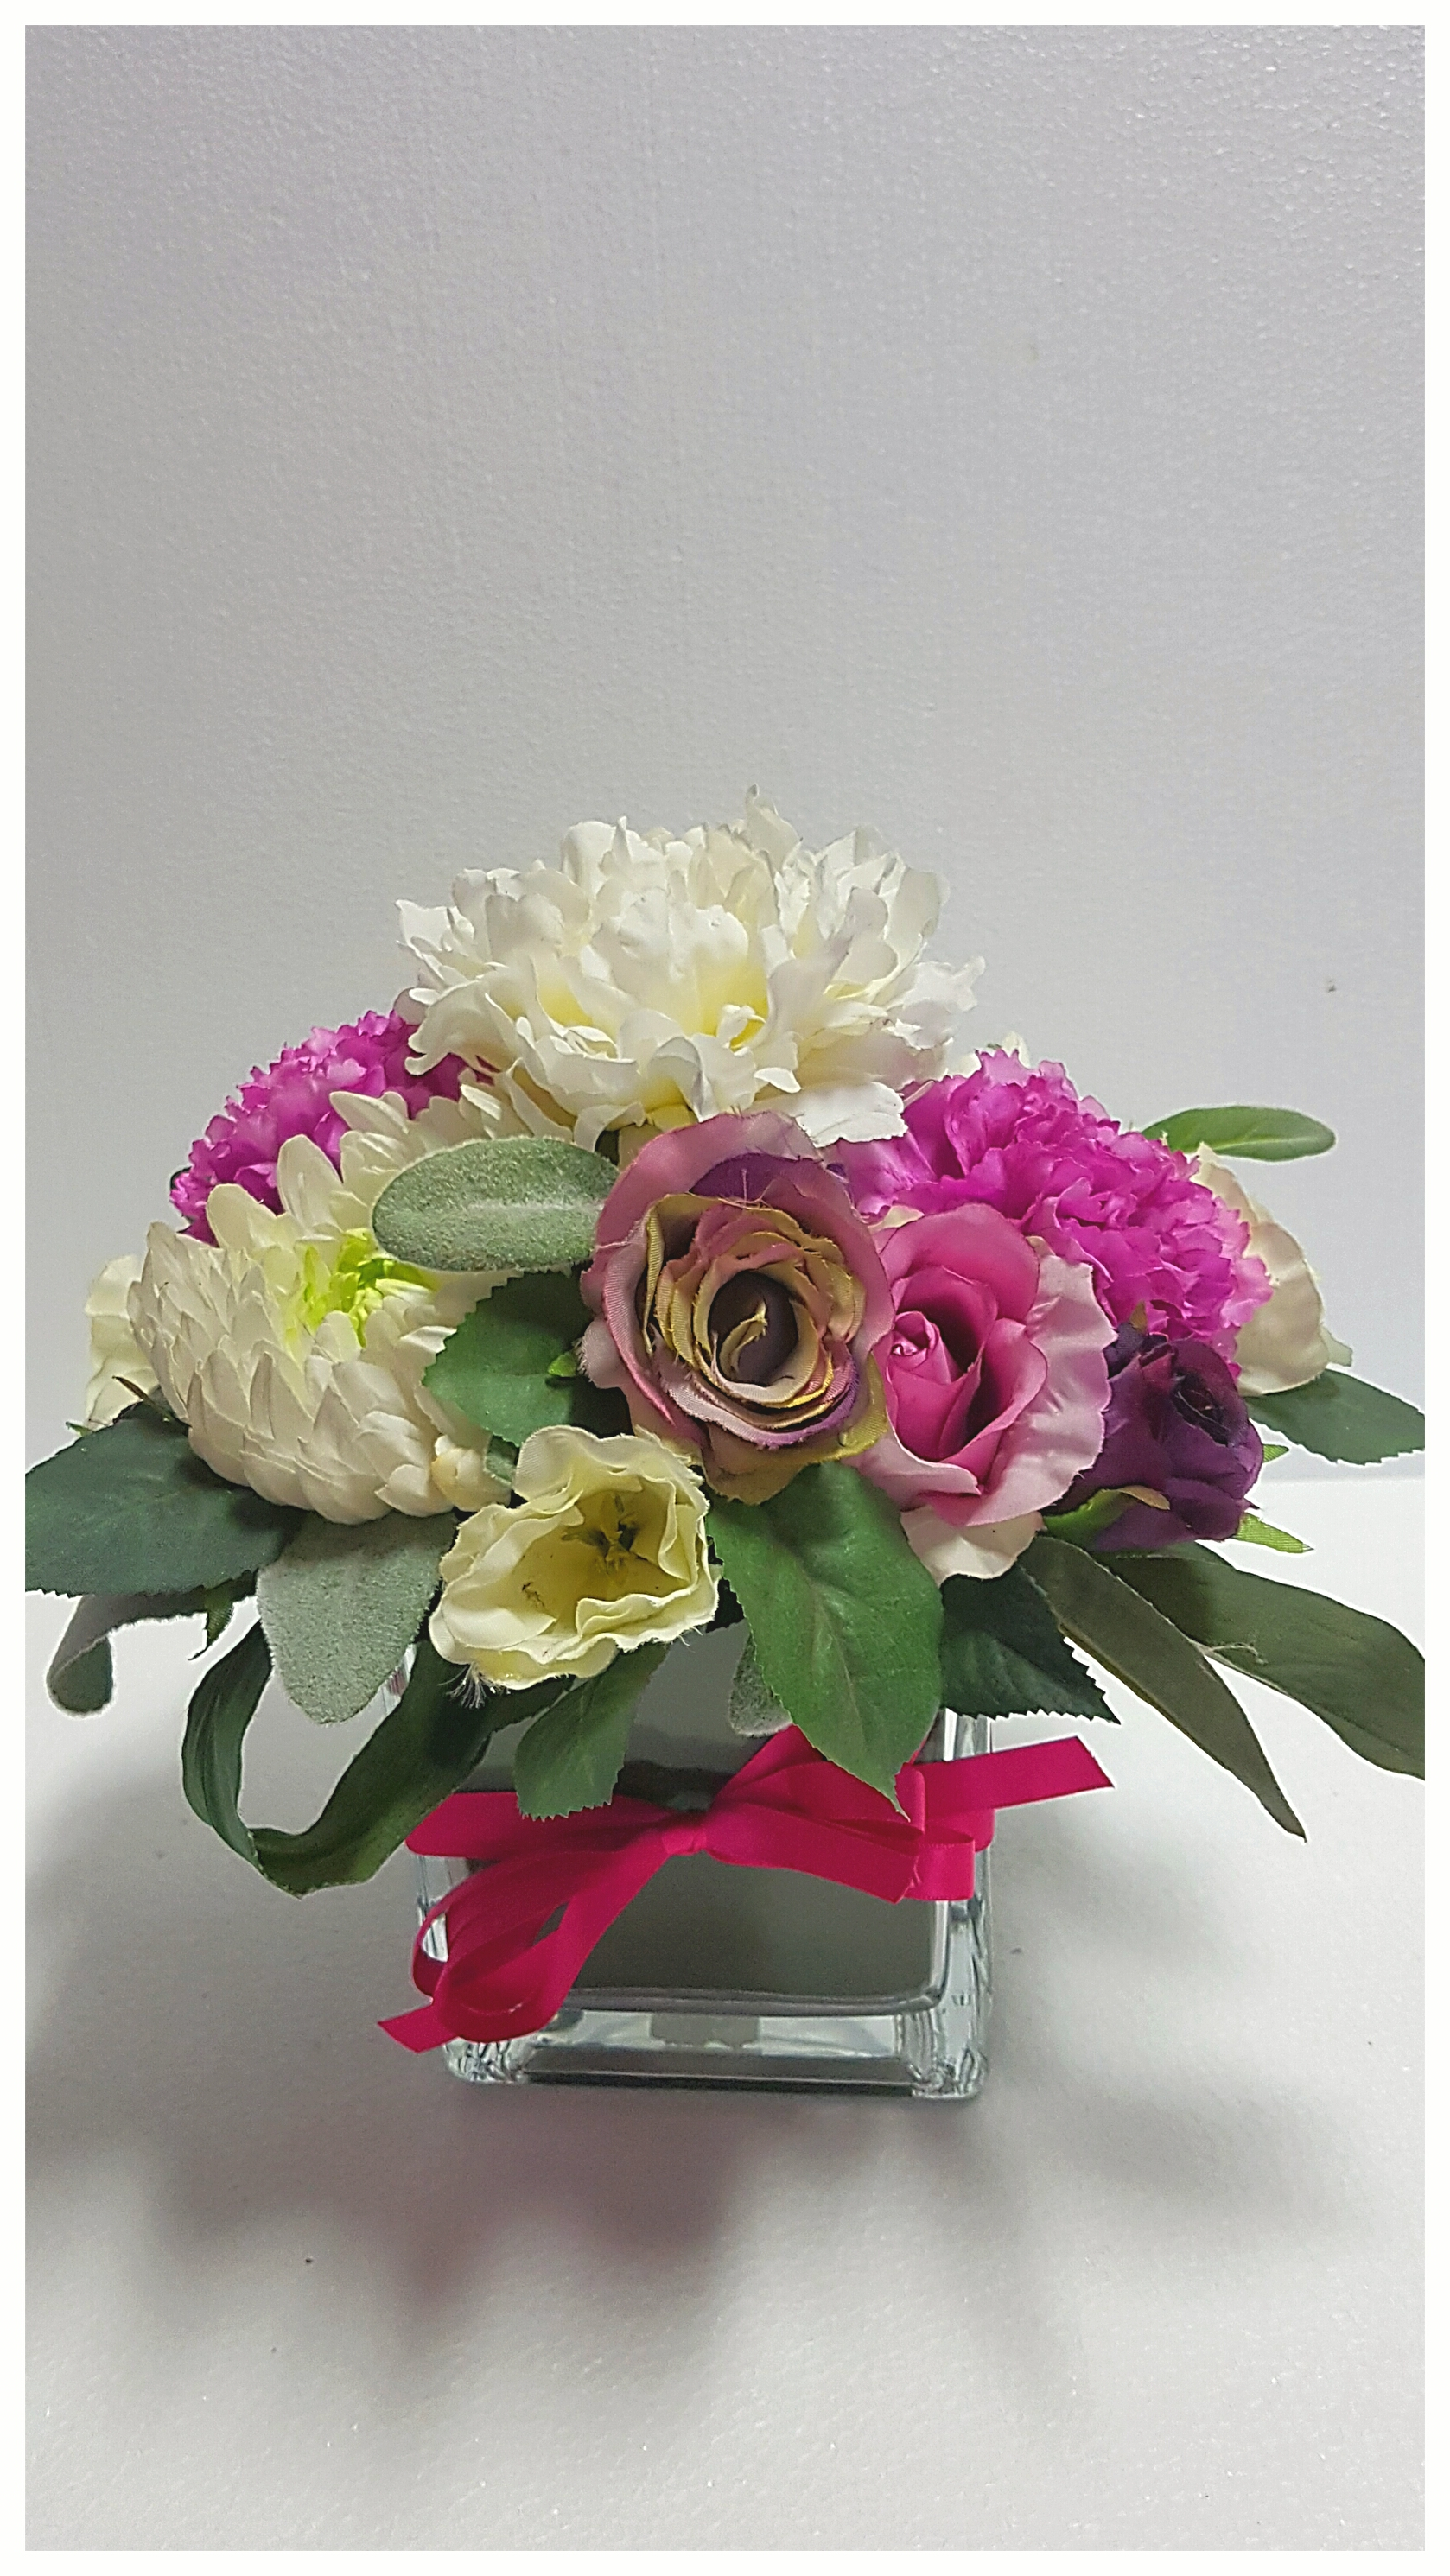 An artificial arrangement of white, pink purple flowers displayed in a glass cube